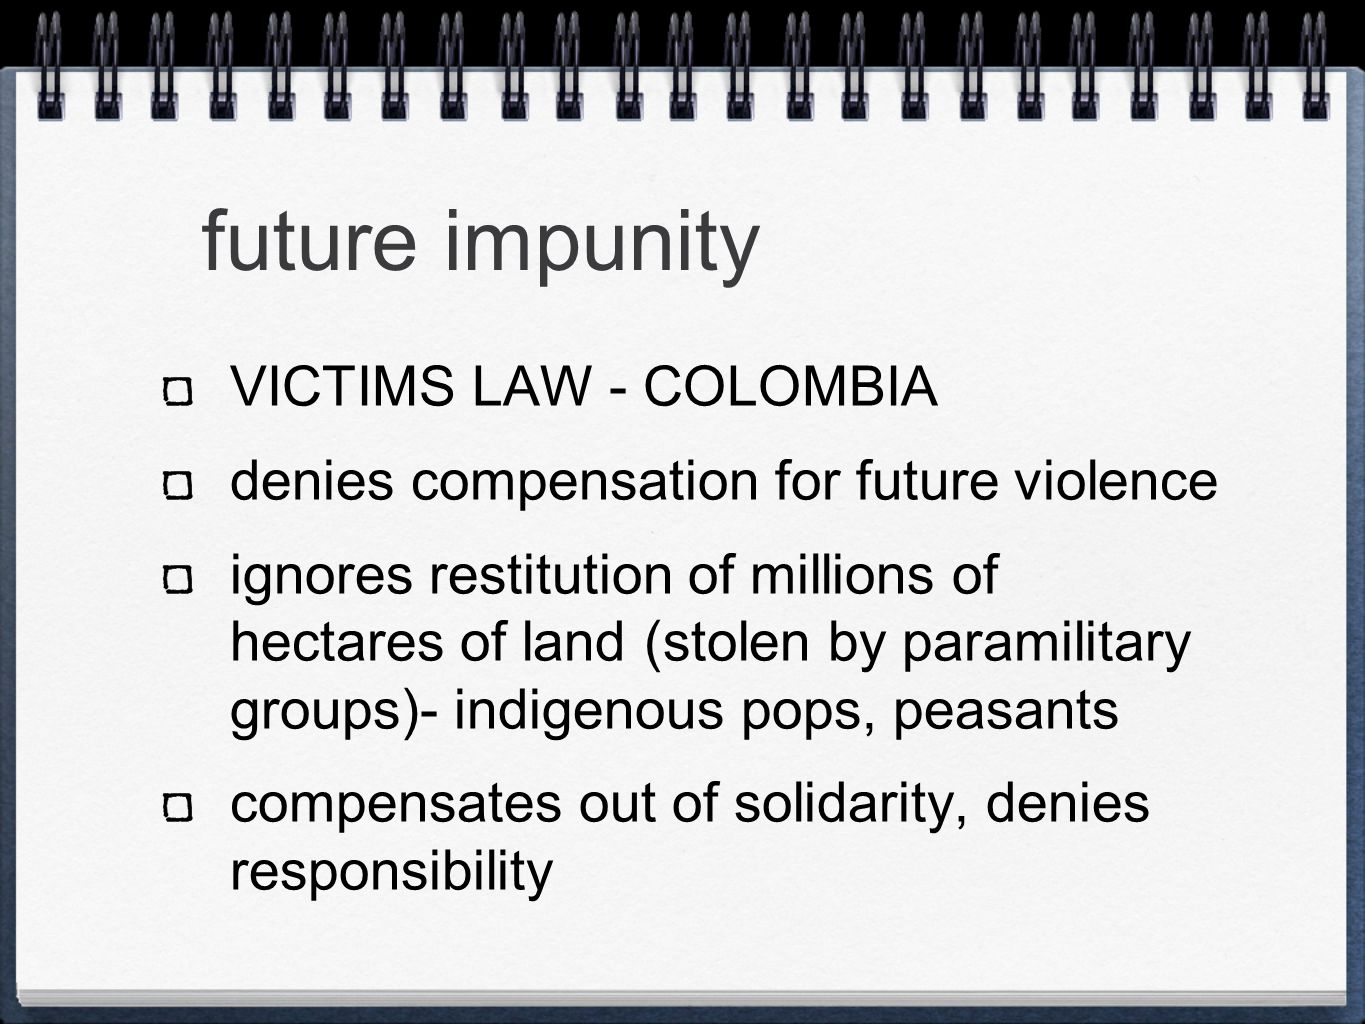 future impunity VICTIMS LAW - COLOMBIA denies compensation for future violence ignores restitution of millions of hectares of land (stolen by paramilitary groups)- indigenous pops, peasants compensates out of solidarity, denies responsibility